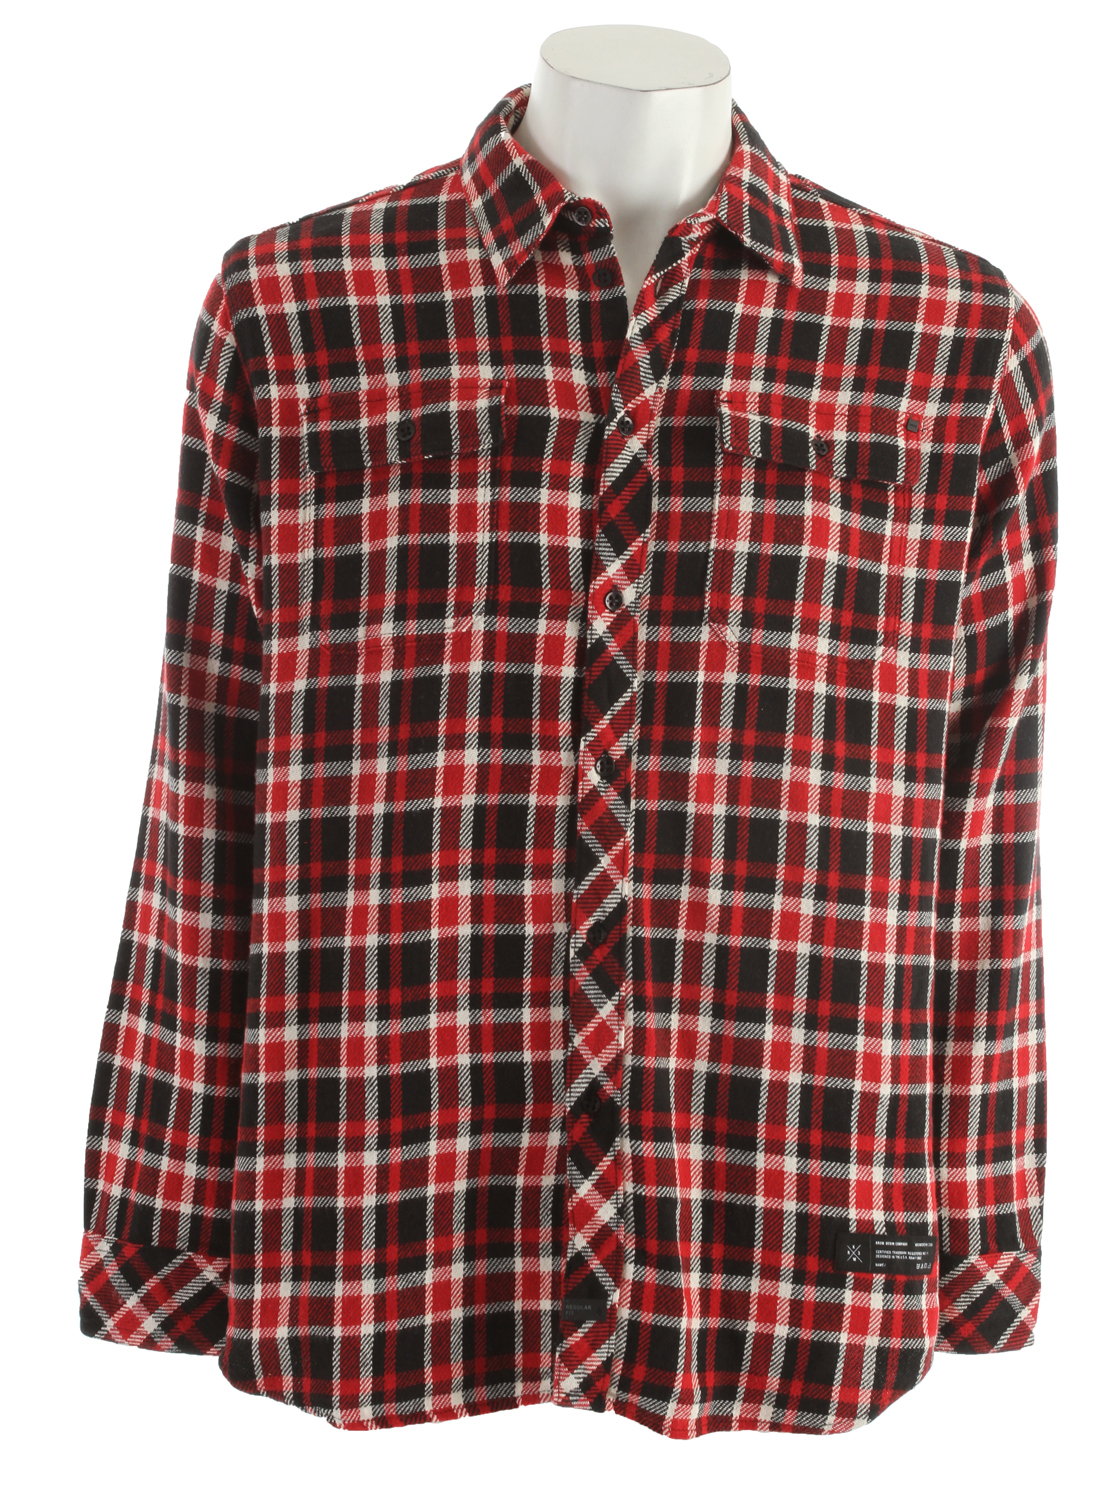 Your friends' reaction to this KR3W Automatic Plaid Shirt will be automatically positive. The attractive 100% cotton shirt features a Button Up design and Regular Fit. Plaid & flannel is definitely in this season, and this shirt has a classic look that goes well with jeans or khakis. With 2 Chest Pockets to store your essentials, this KR3W Automatic Plaid Shirt is perfect for daily wear.Key Features of the KR3W Automatic Plaid Shirt: 100% cotton yd Regular fit - $29.95